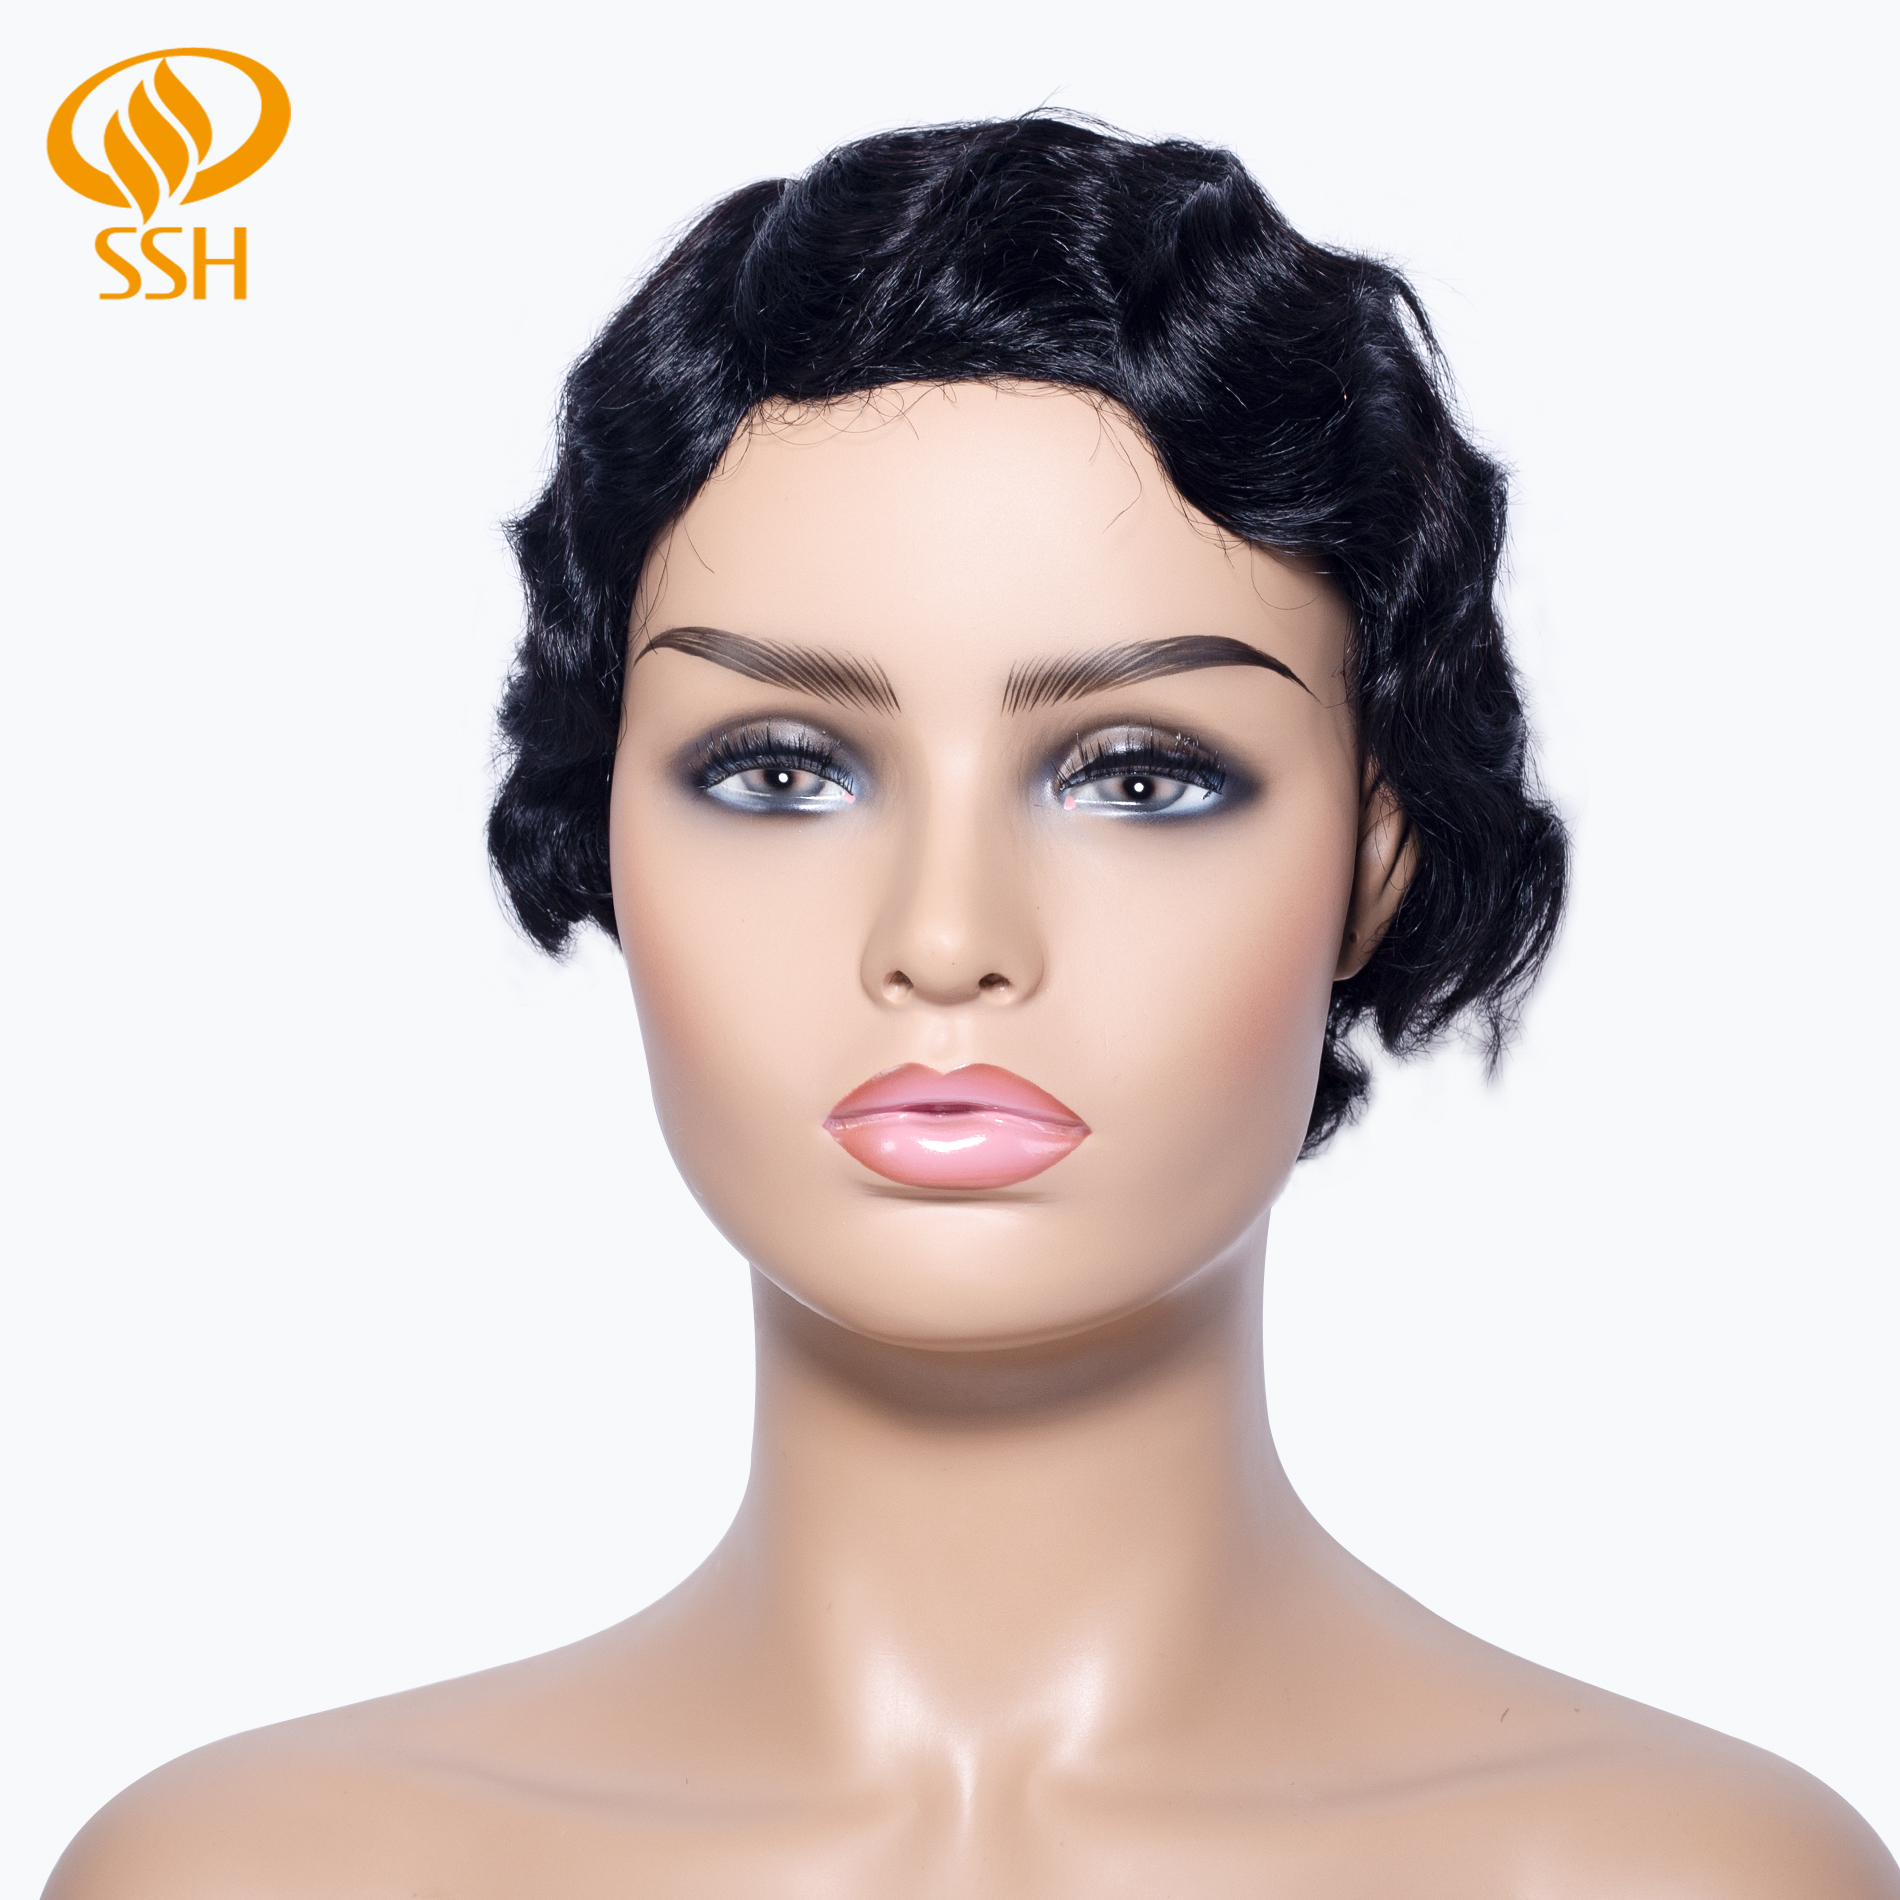 SSH Finger Wave Wig Short Non-Remy Human Hair Natural Color For Black Women